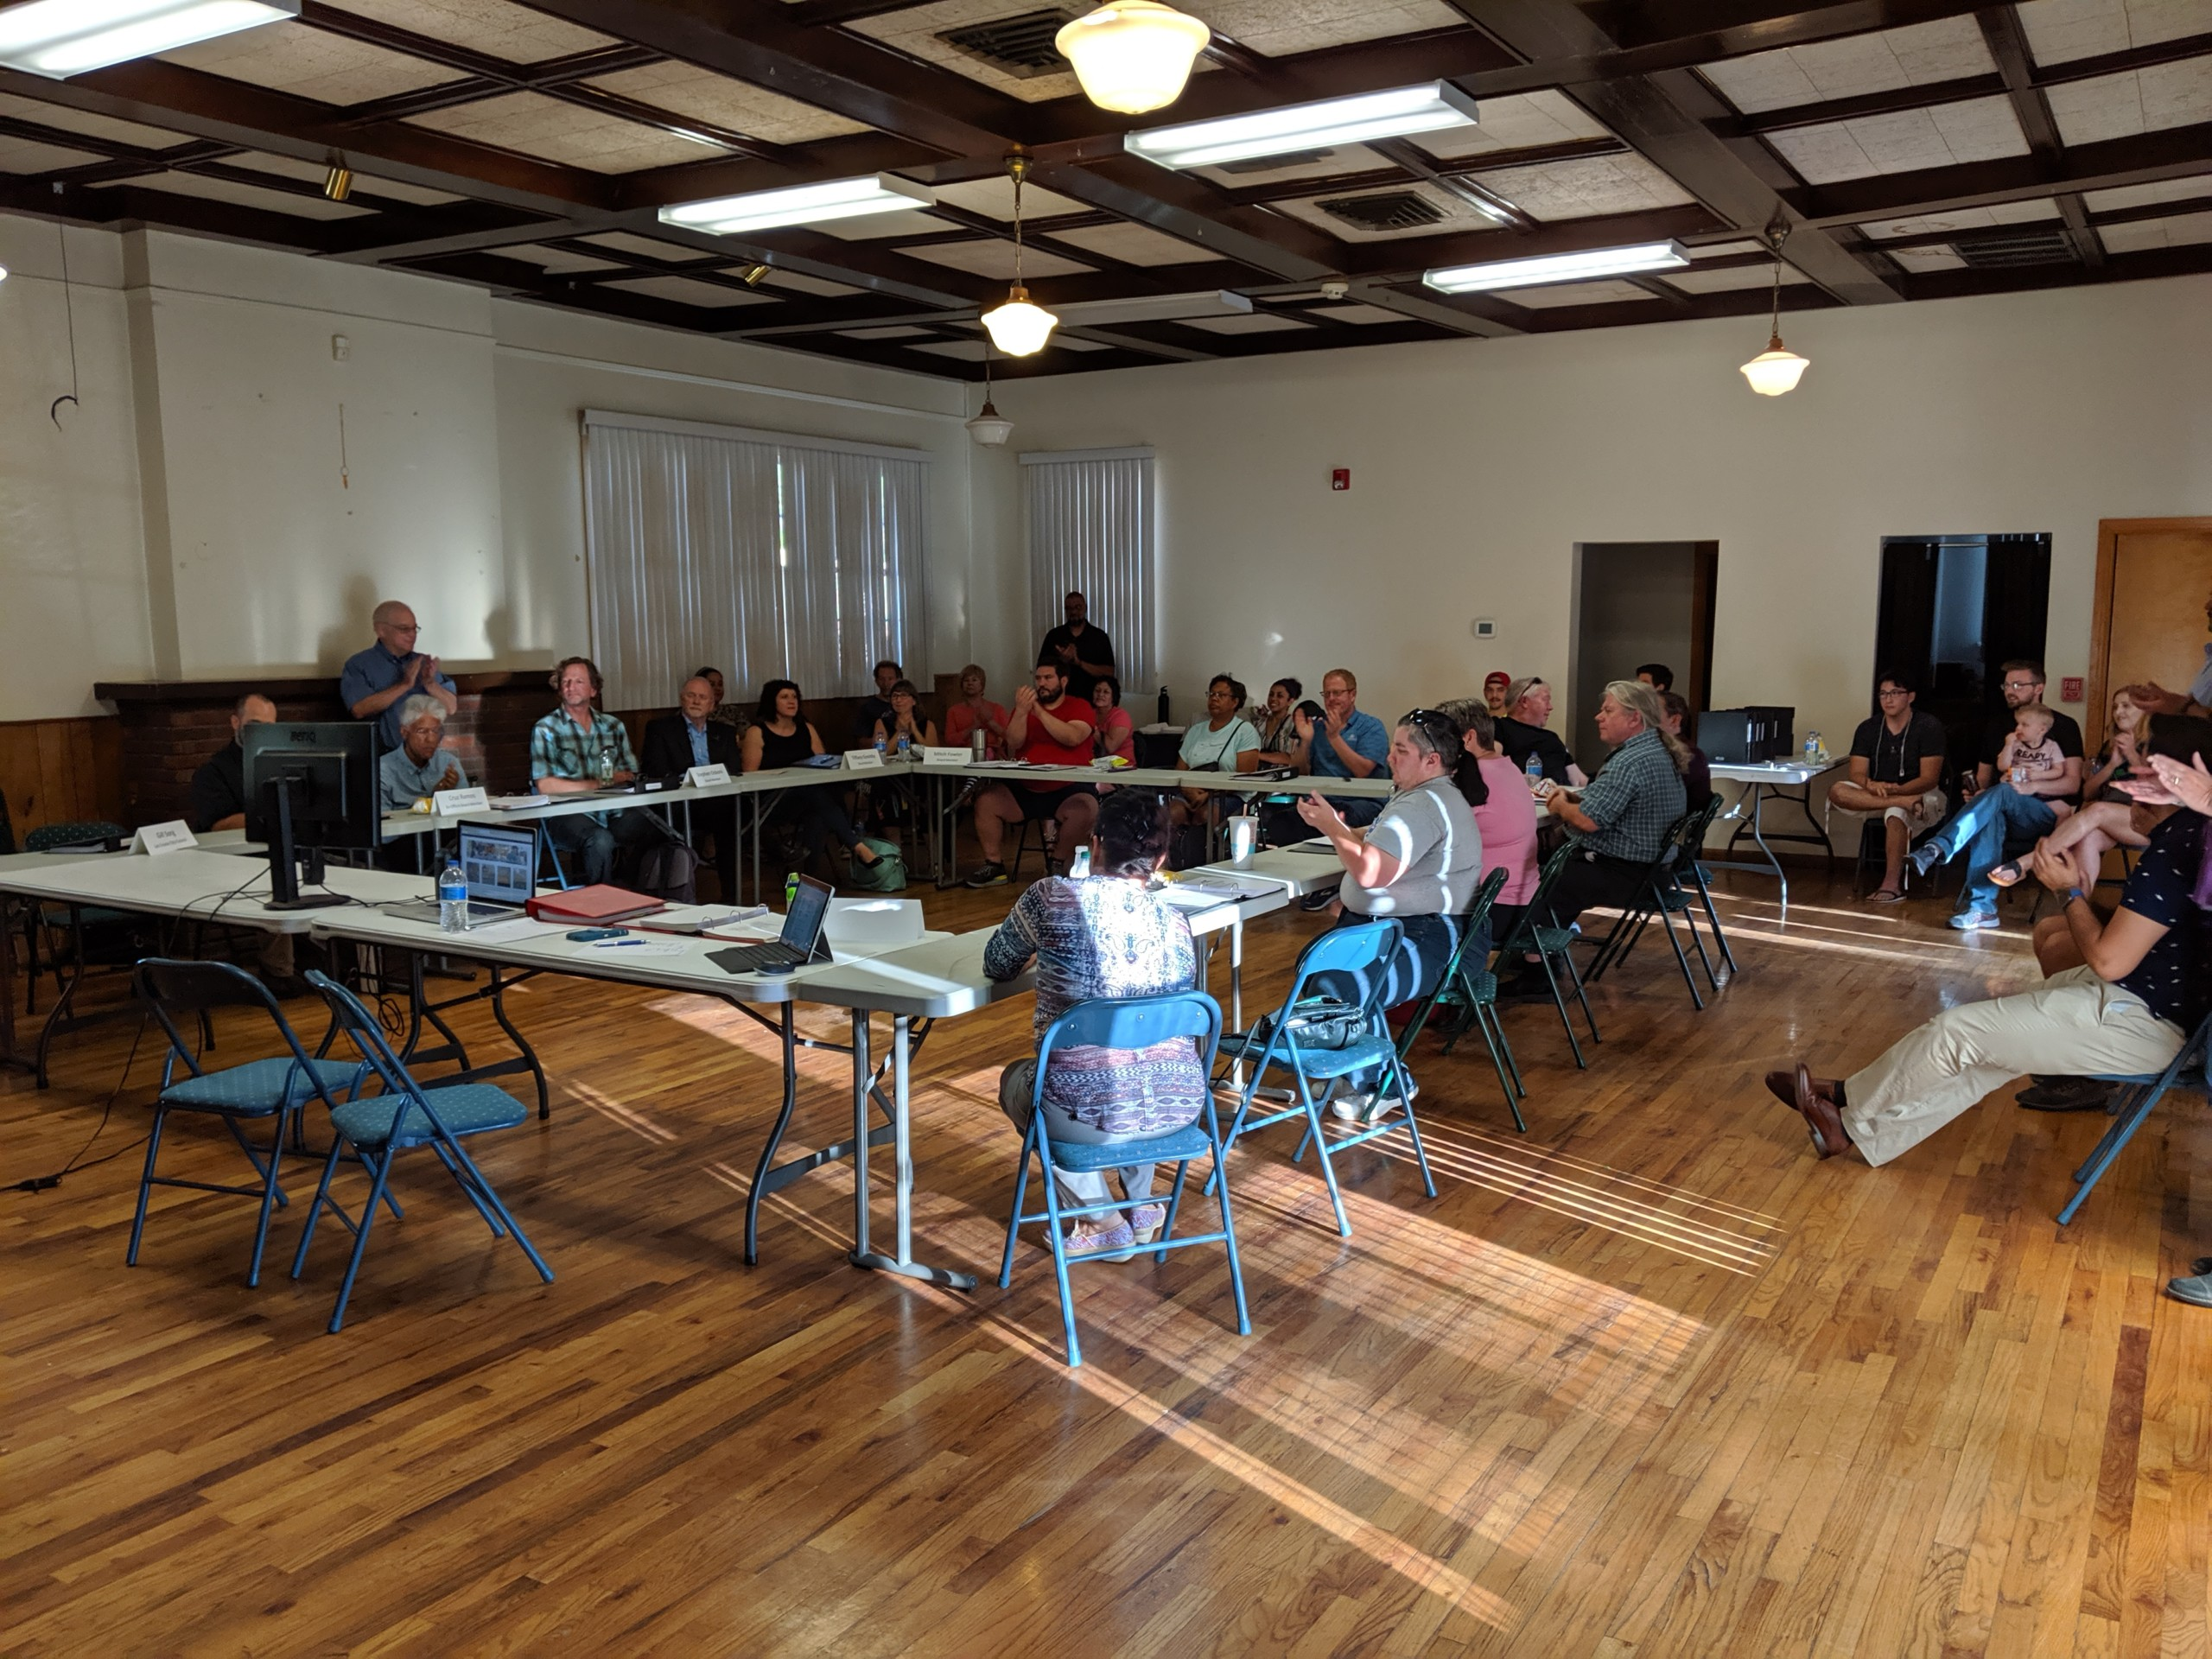 Film Las Cruces Monthly Board Meeting – UPDATE